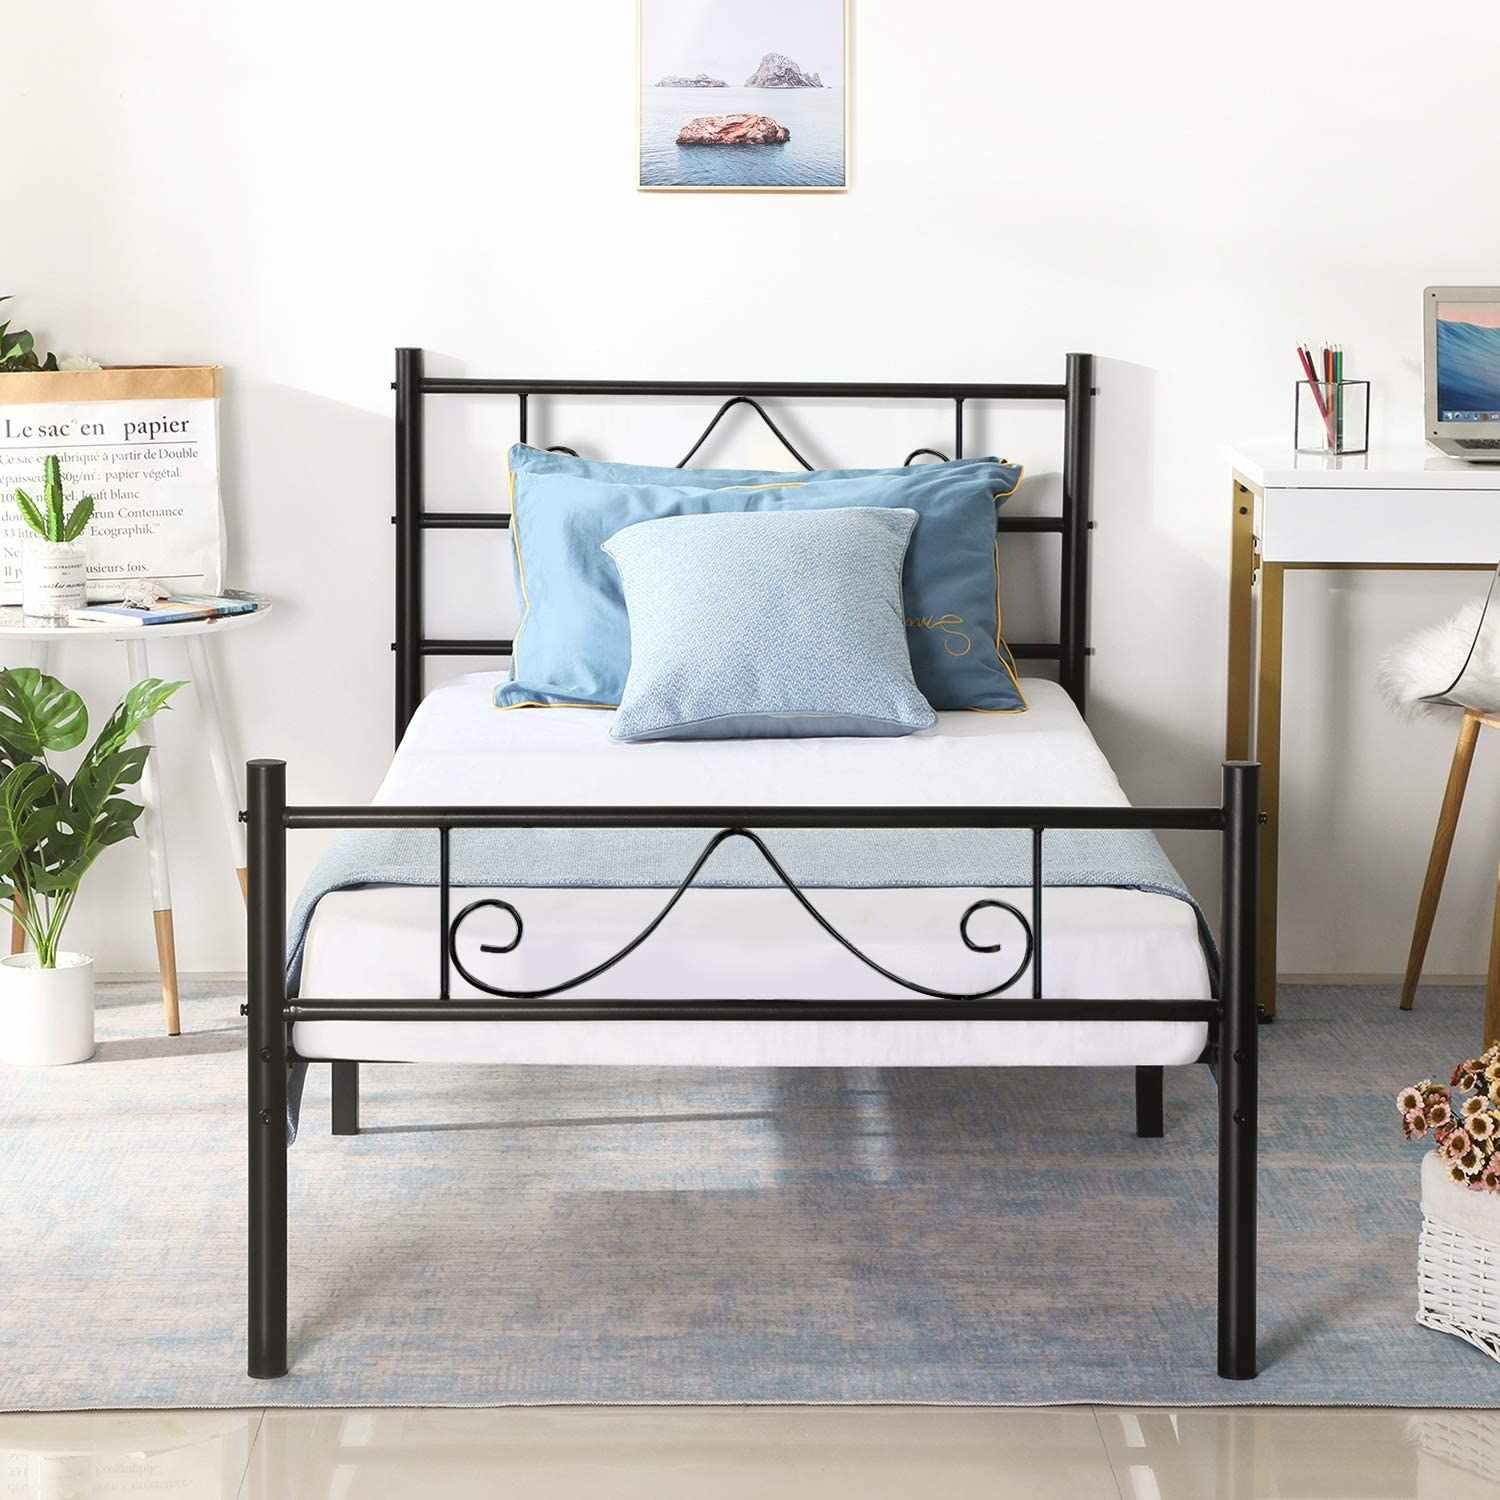 Picture of: Metal Bed Frame Twin Full Steel Platform Bed Headboard Footboard Support Large Storage Space For Teenage Adults Children Bedroom Aliexpress